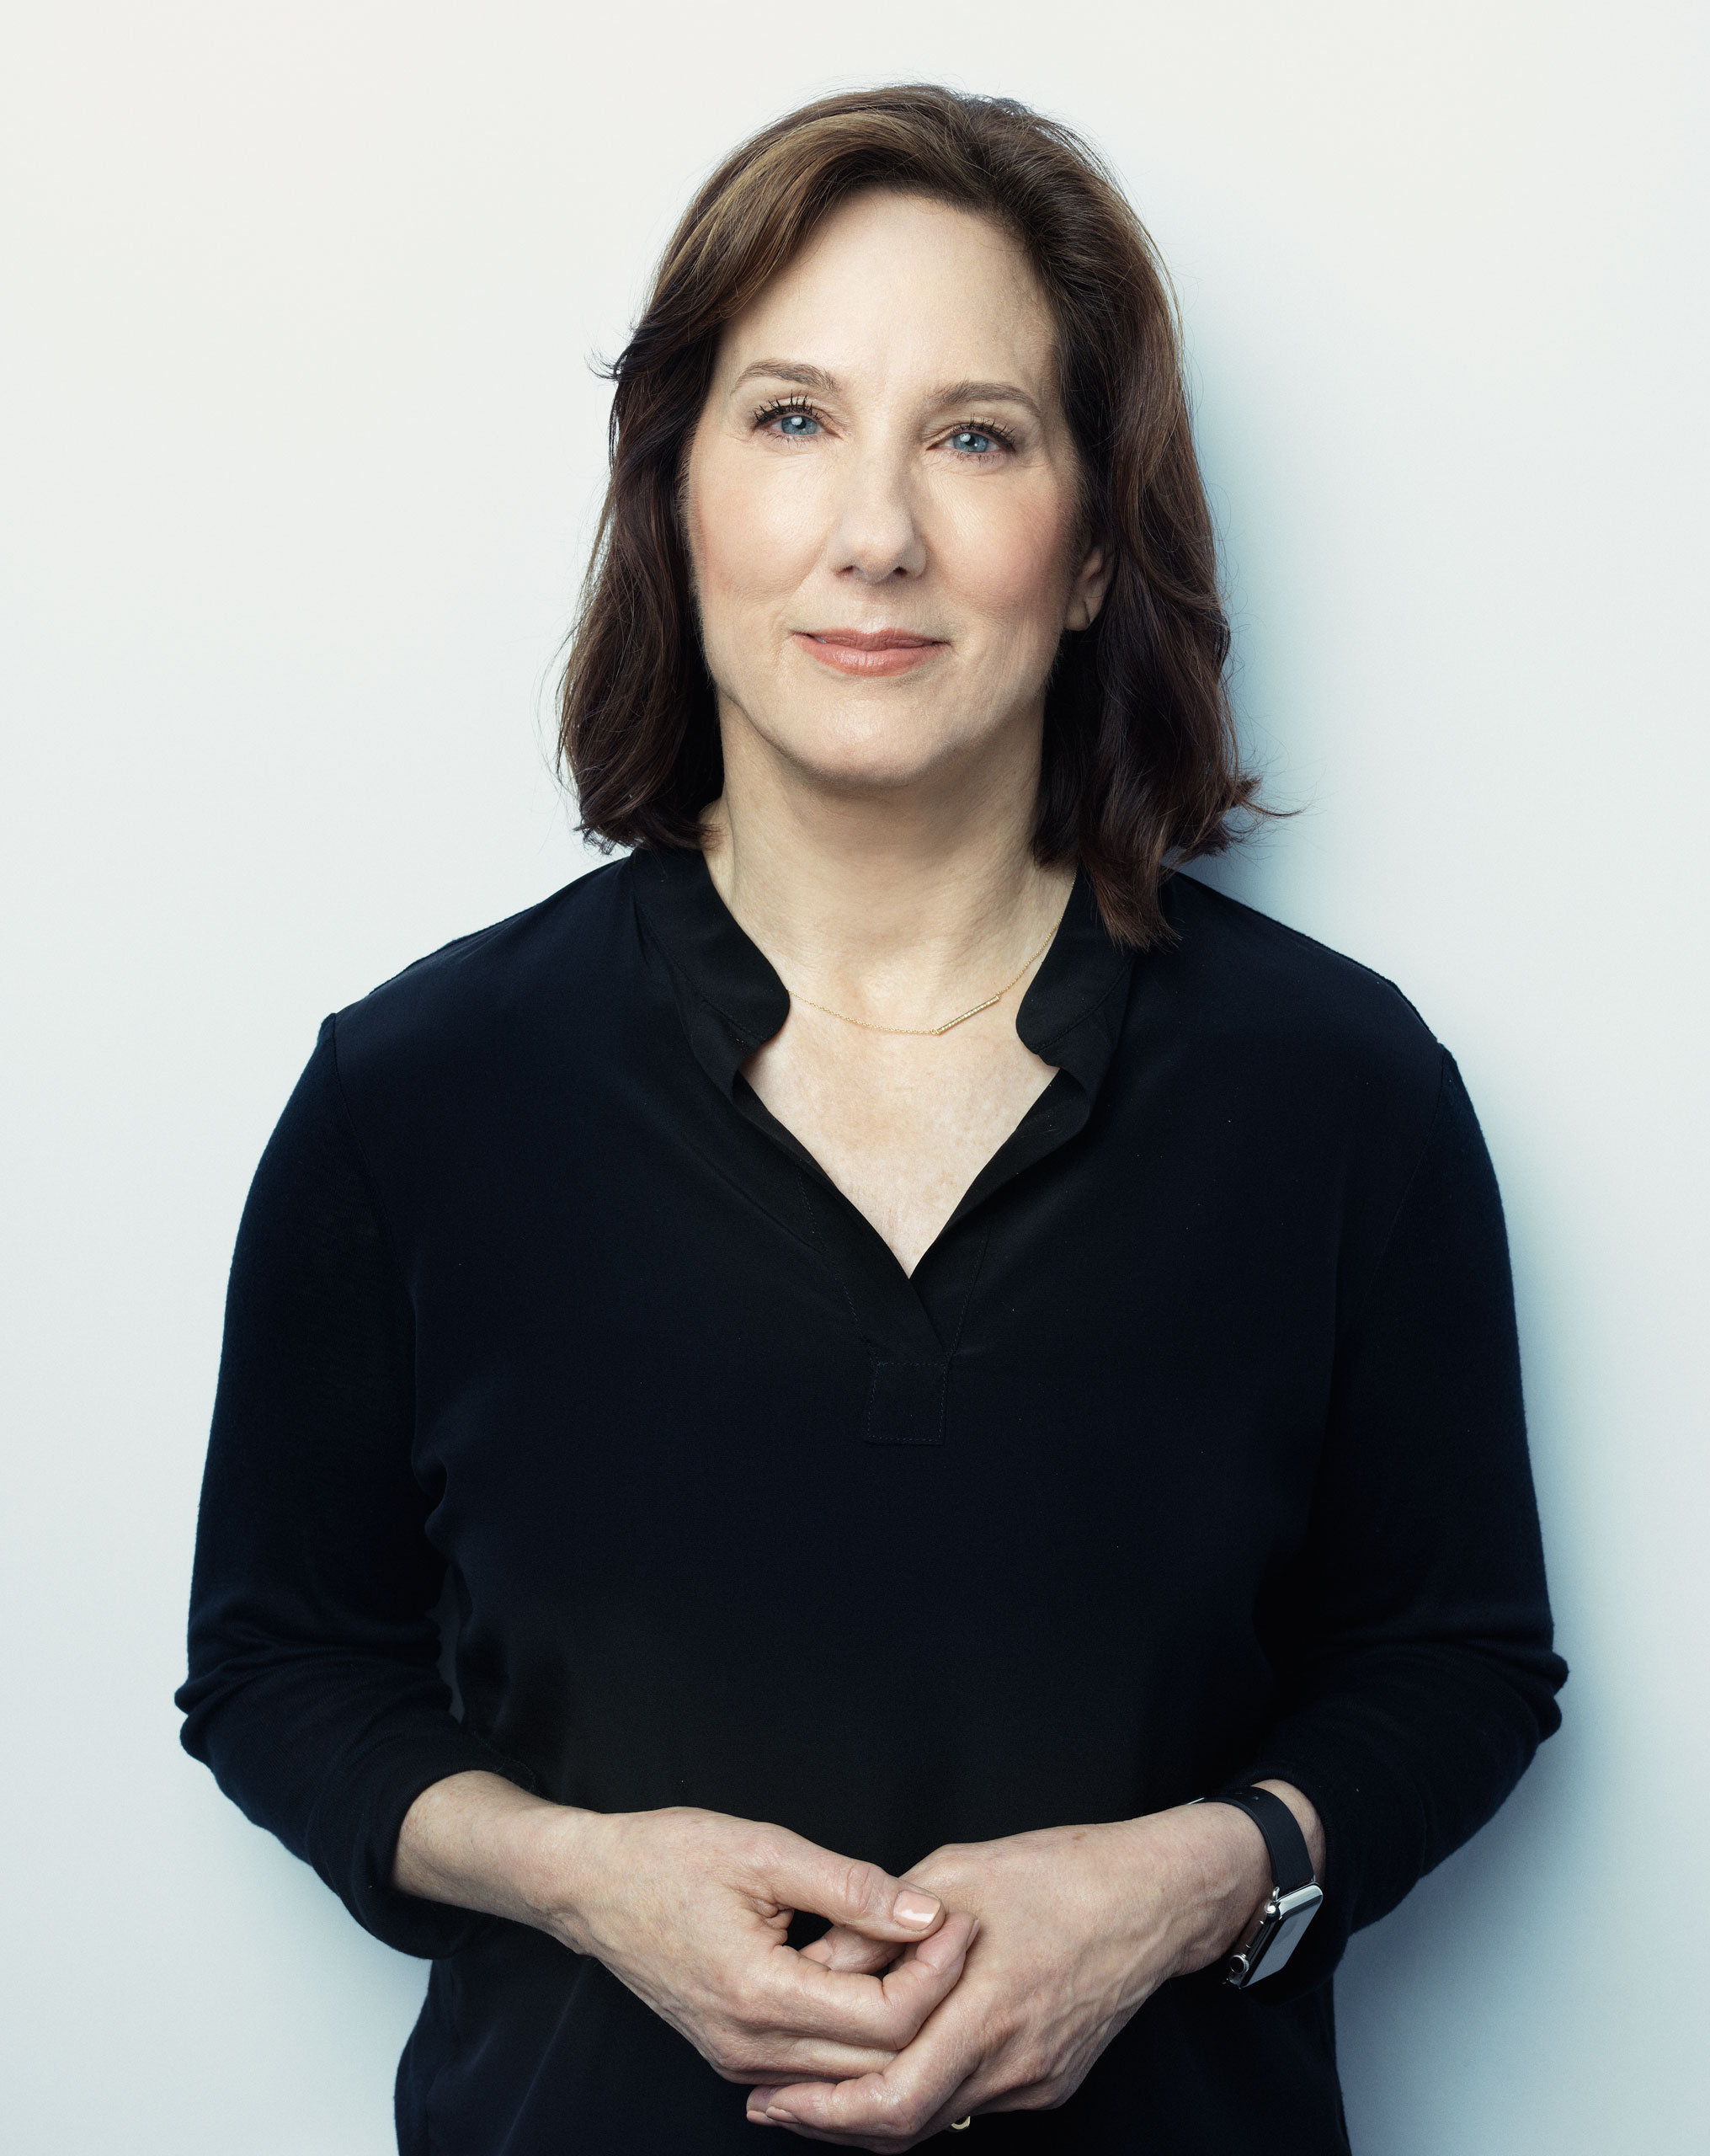 Kathleen Kennedy photographed for TIME on October 29, 2015 in London.